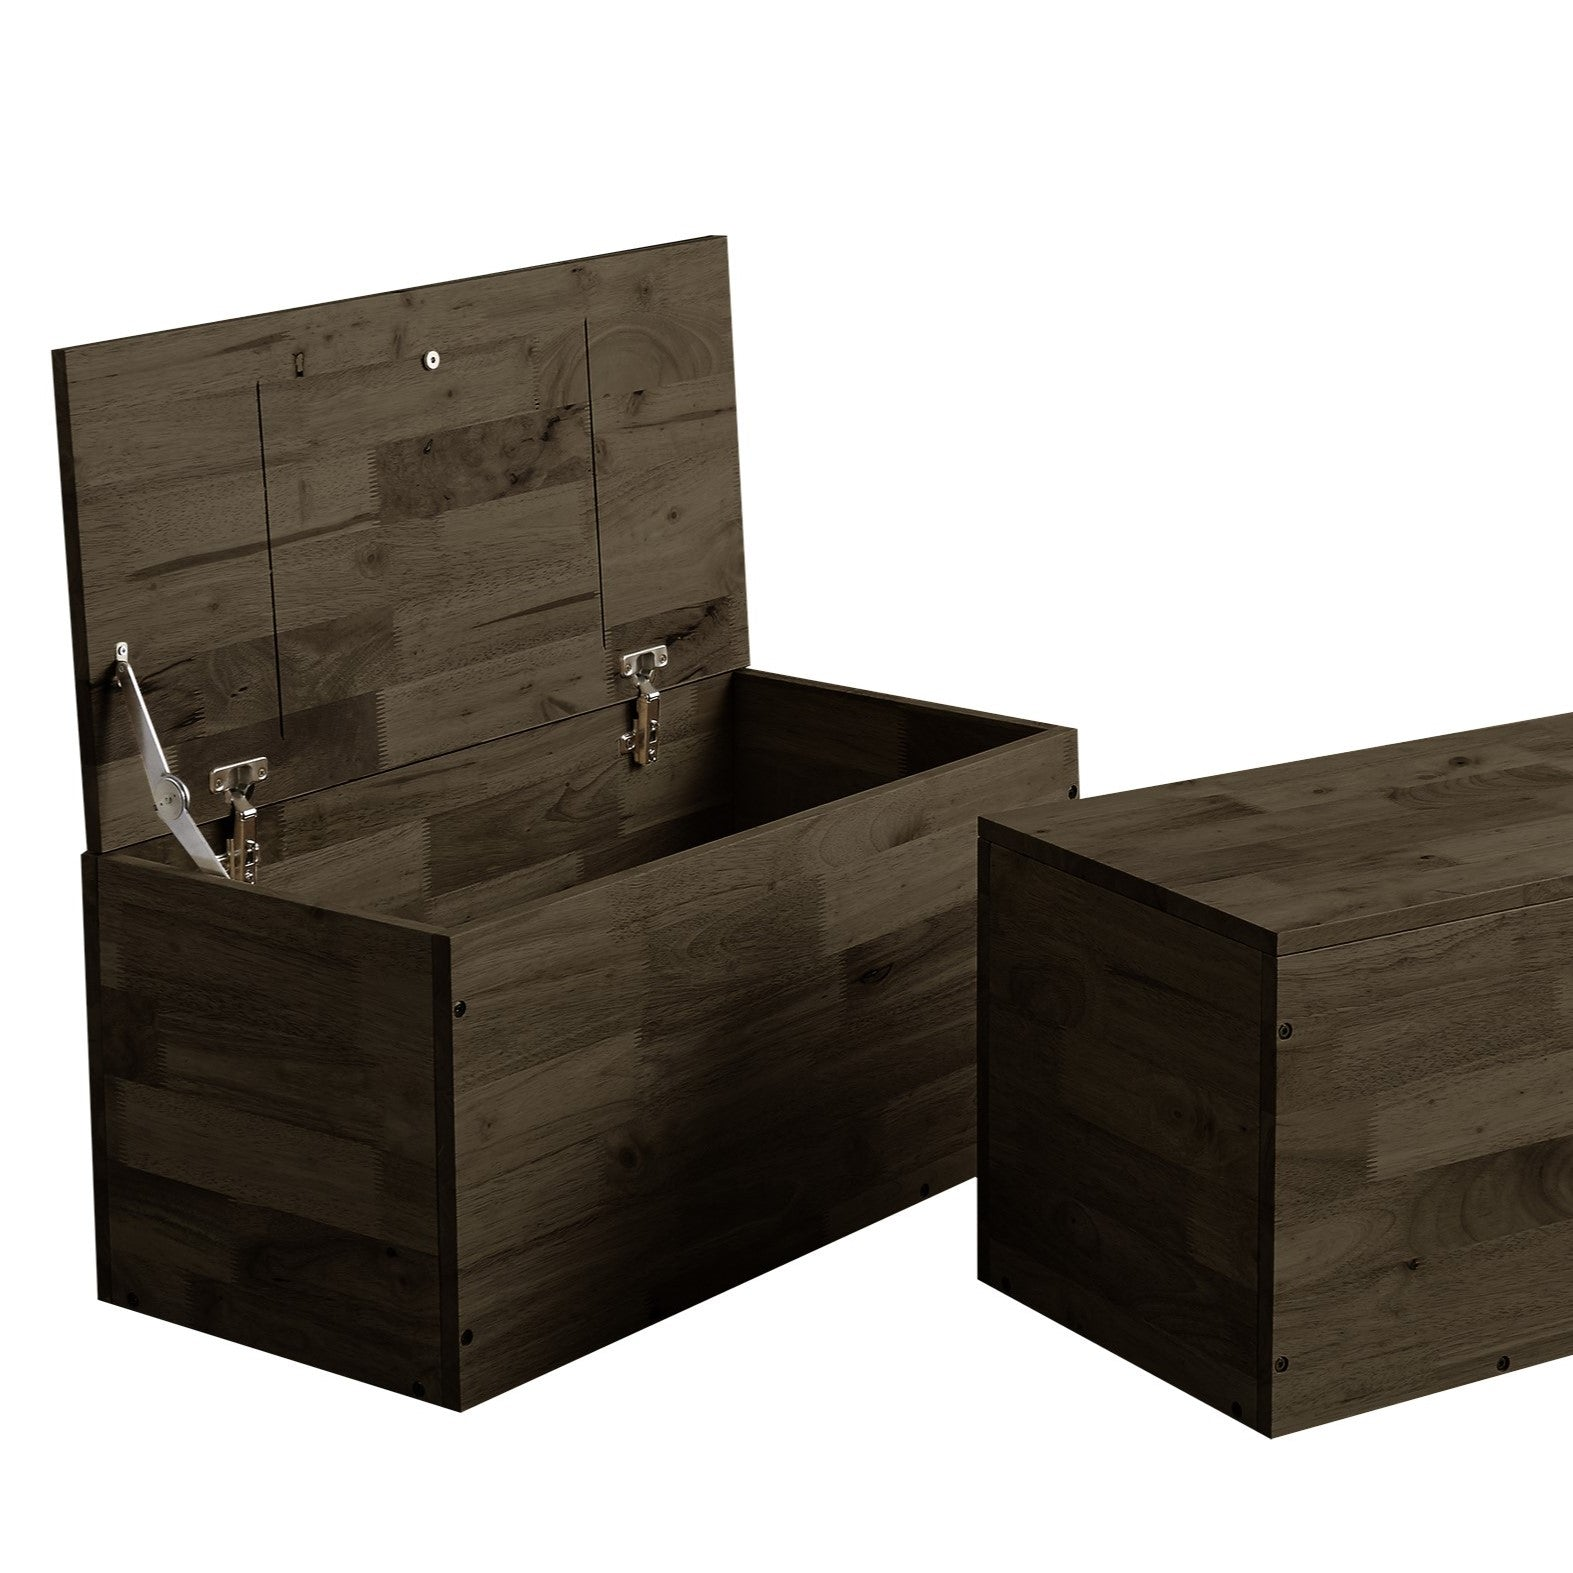 AMERICANA Solid Wood Tatami Rectangular Side Cabinet Storage Box (WIL-5155-1)